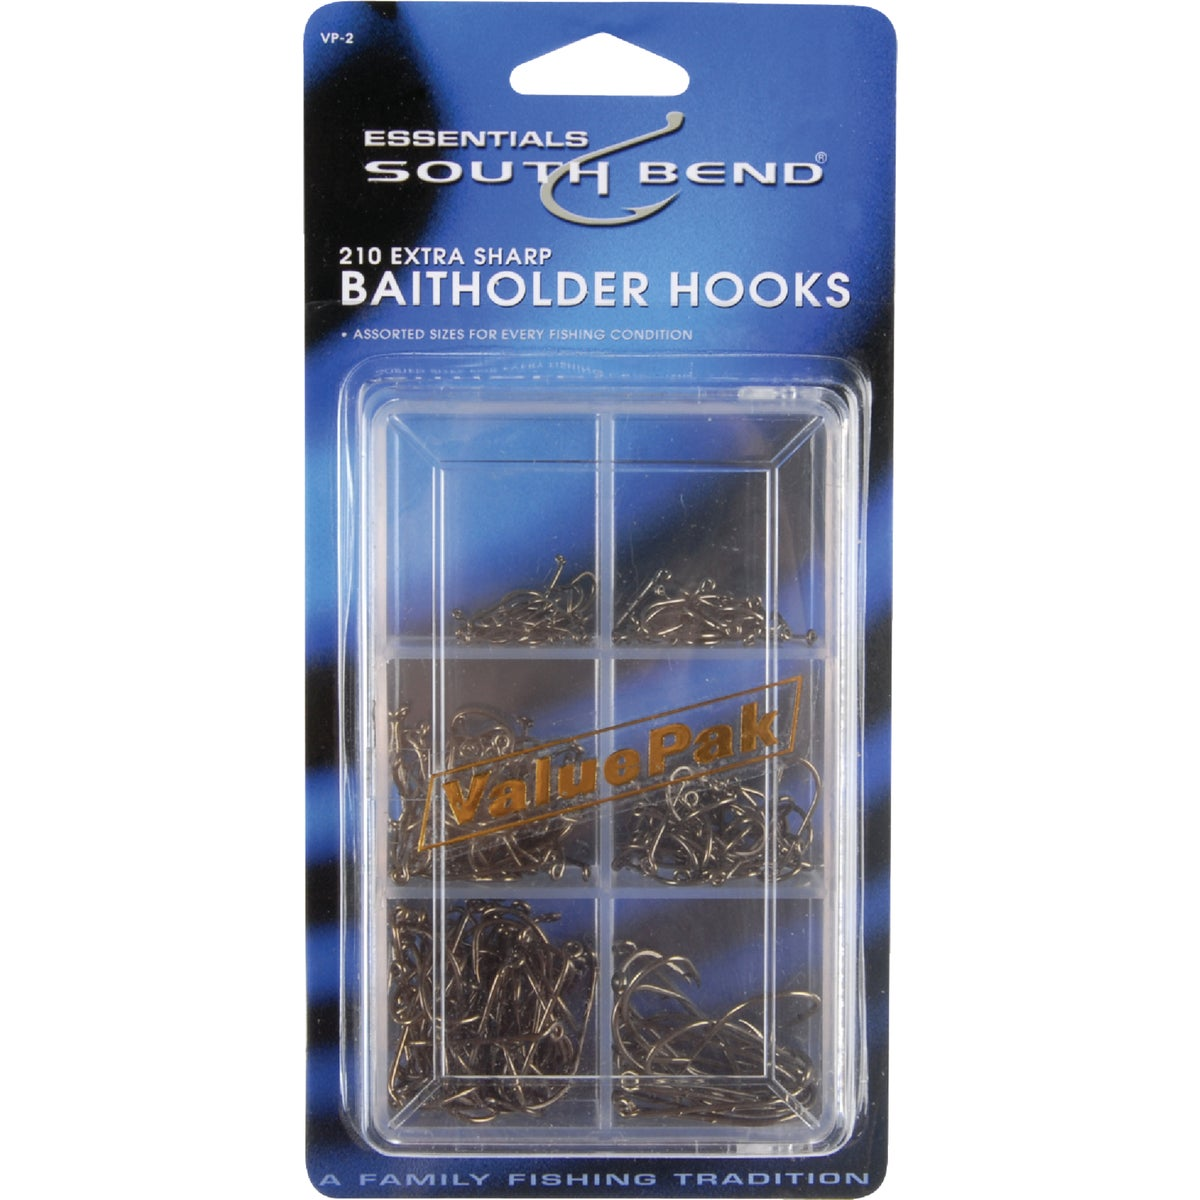 VALUE PACK BAIT HOOKS - VP2 by South Bend Sptg Good